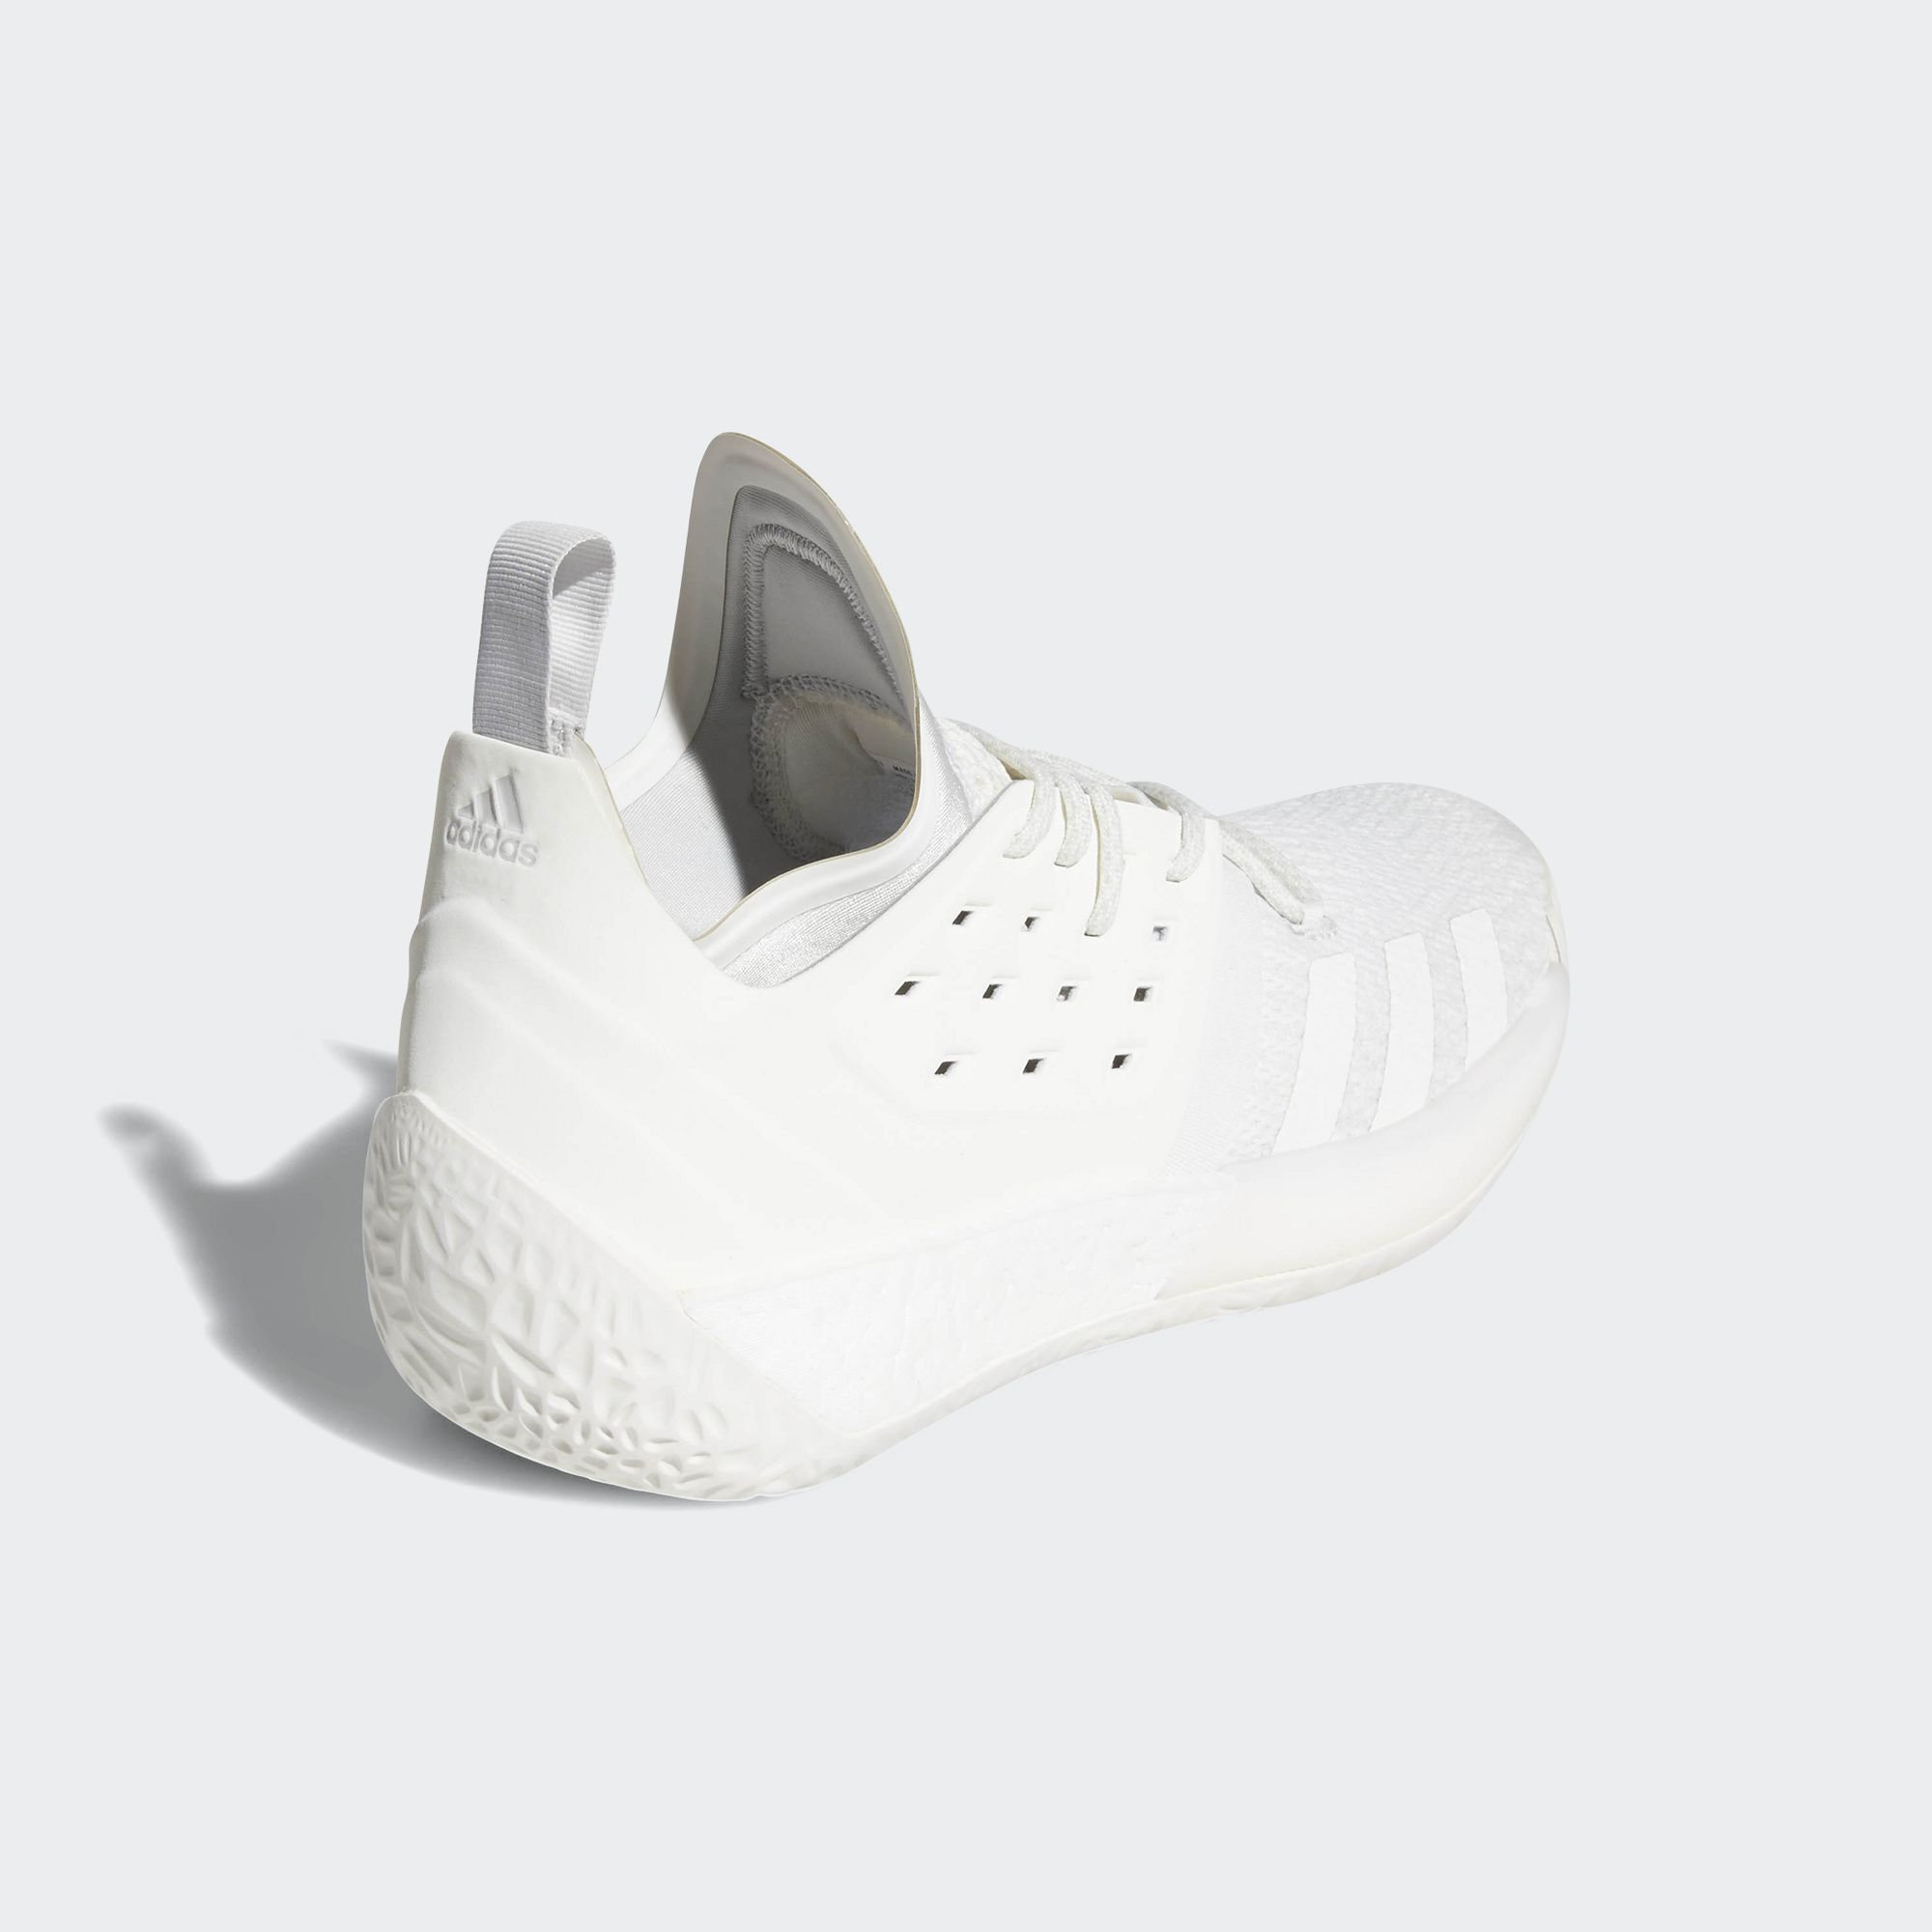 bd997504ffc1 adidas harden vol 2 grey white - WearTesters